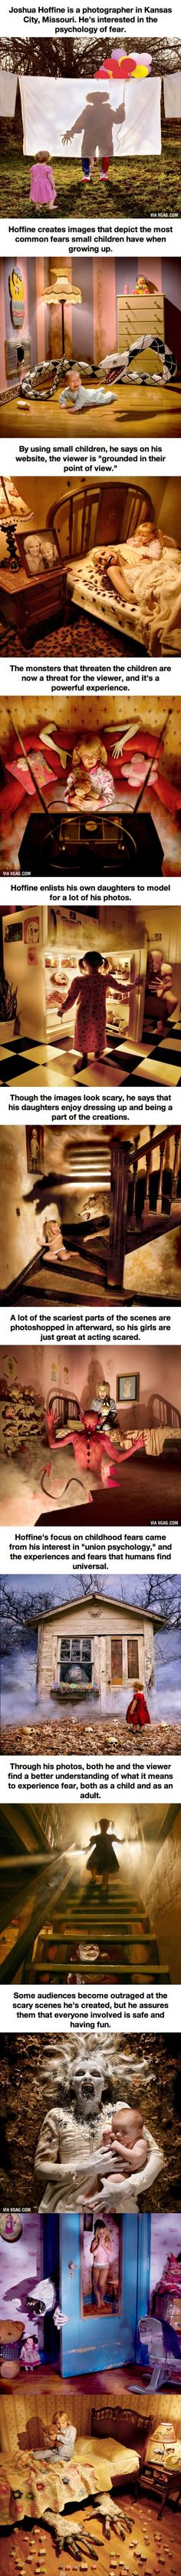 12 Seriously Disturbing Pictures Of Children's Nightmares, very well done